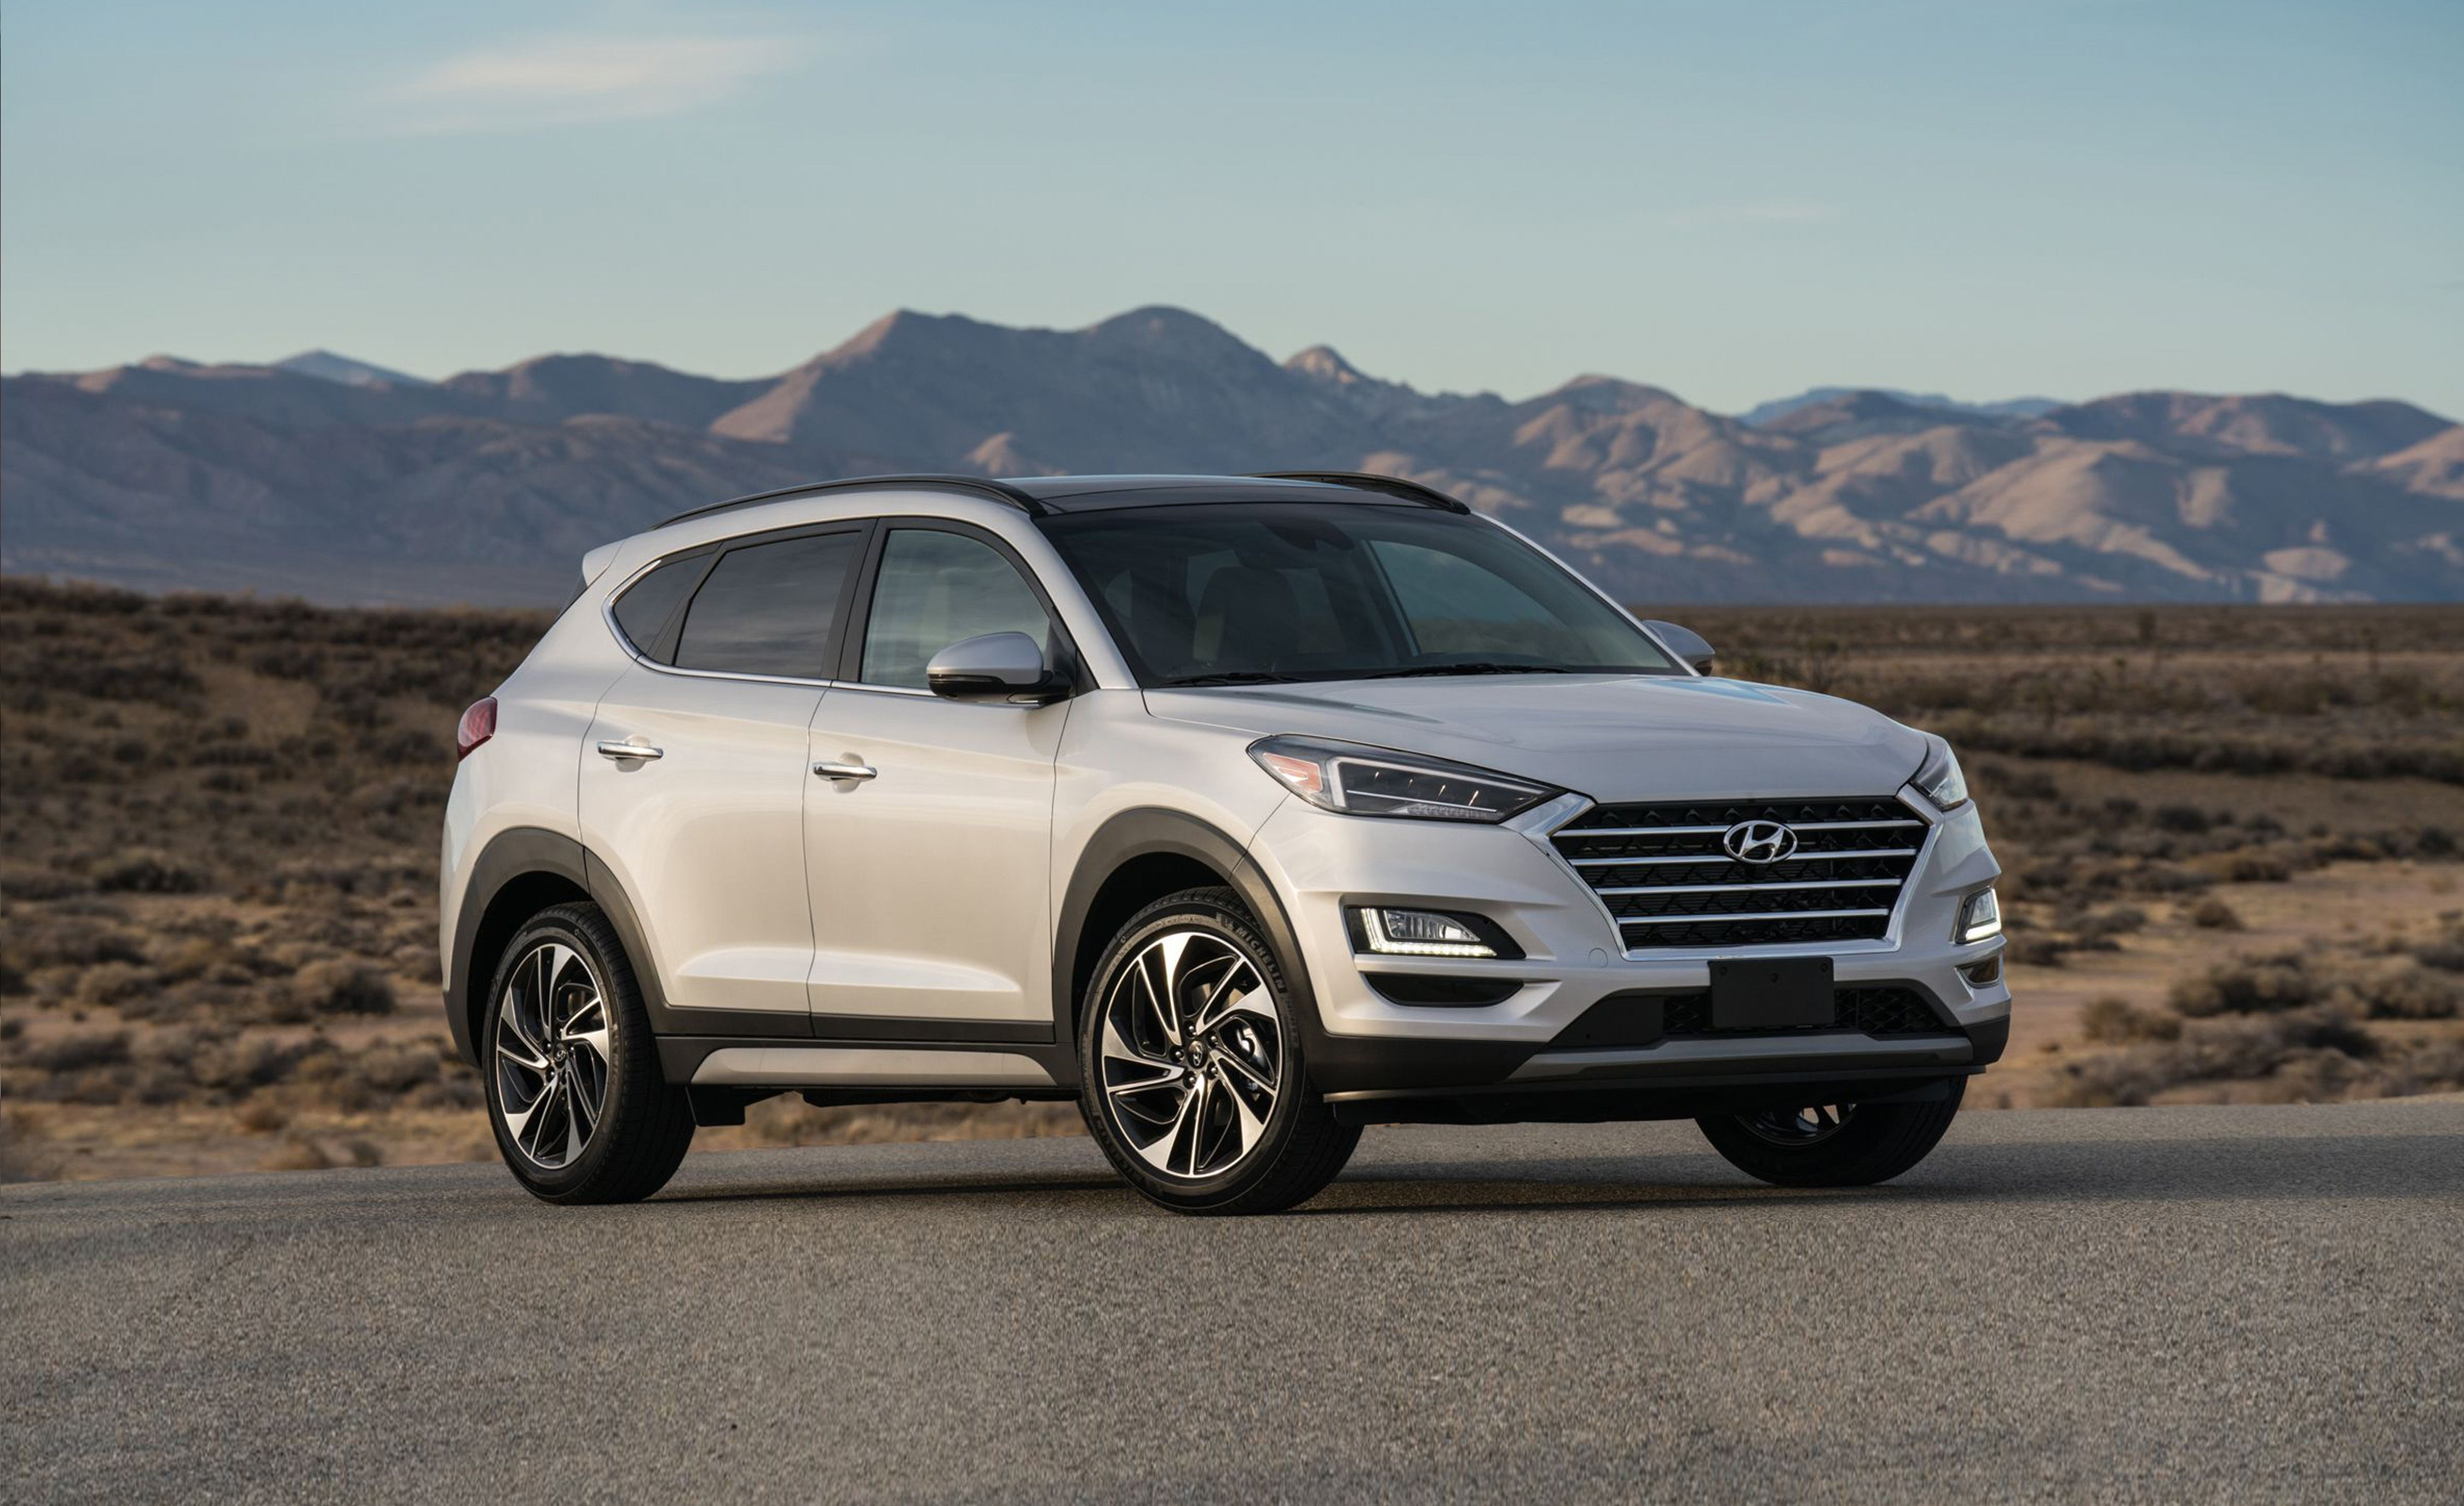 2019 Hyundai Tucson Reviews | Hyundai Tucson Price, Photos ...